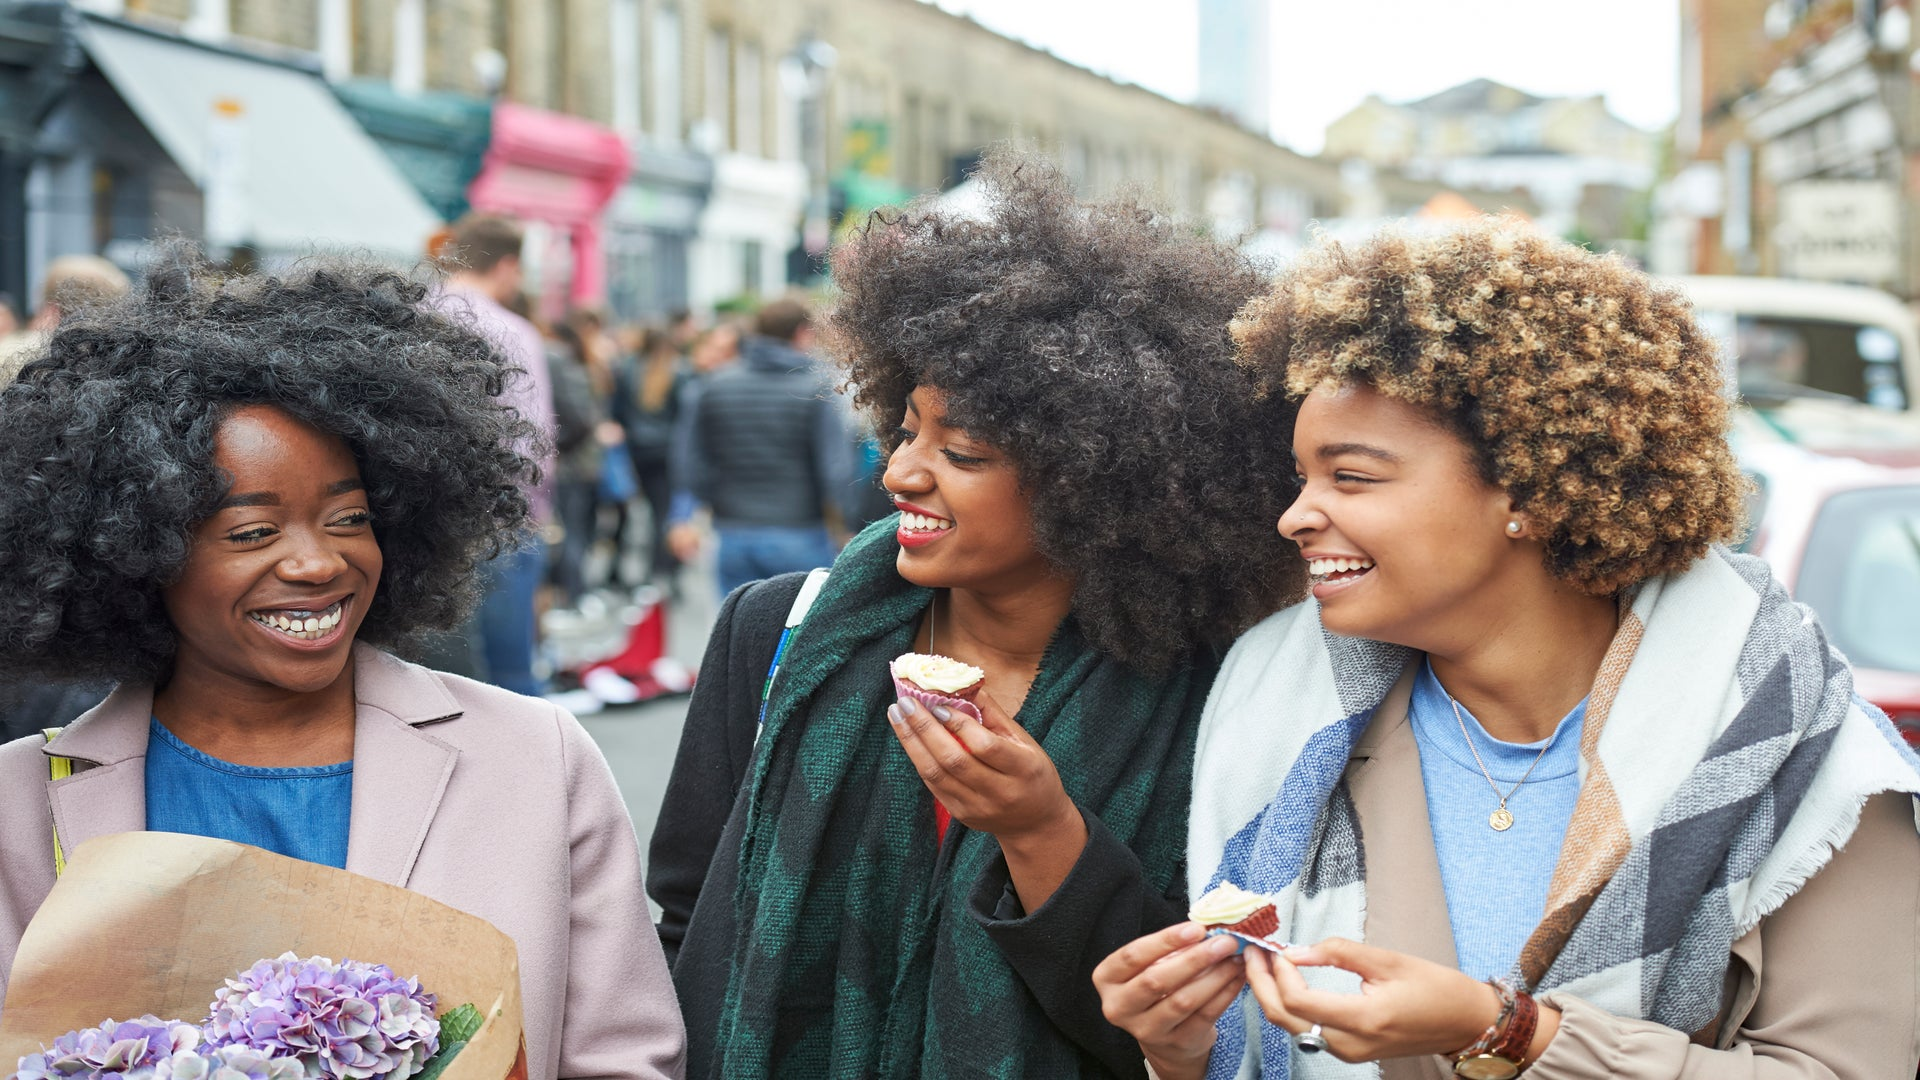 Camille Rose CEO, Janell Stephens, Wants Black Women To Be Their Best Selves